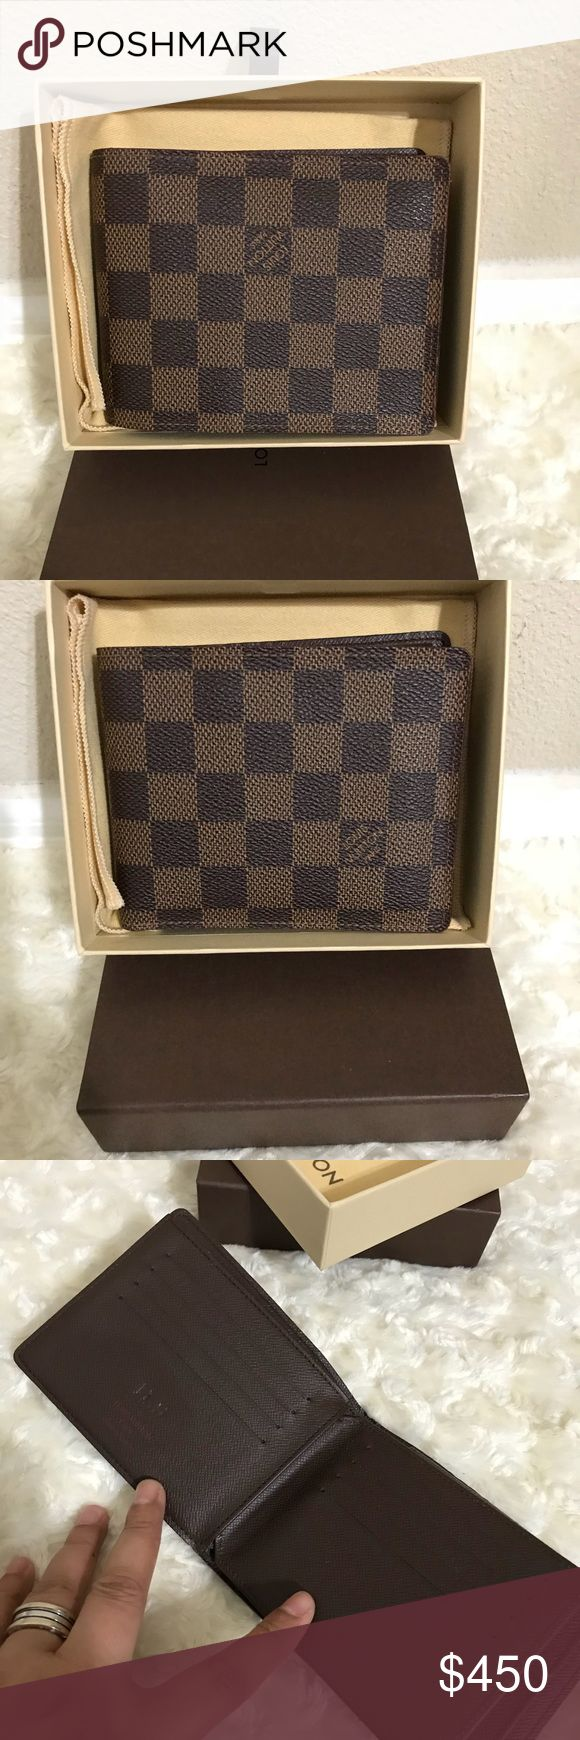 louis vuitton authentic mens wallet Pre-owned 💯 Pre-owned LOUIS VUITTON DAmier ebene mens wallet. In great condition. No rip or tear. No foul smell. No peeling. Date code SP1019 made in france. Has innitial on it Comes with box and dustcover. Please check all the pictures before purchasing. Thank you.no ball offers ❌❌❌not accepted Louis Vuitton Bags Wallets